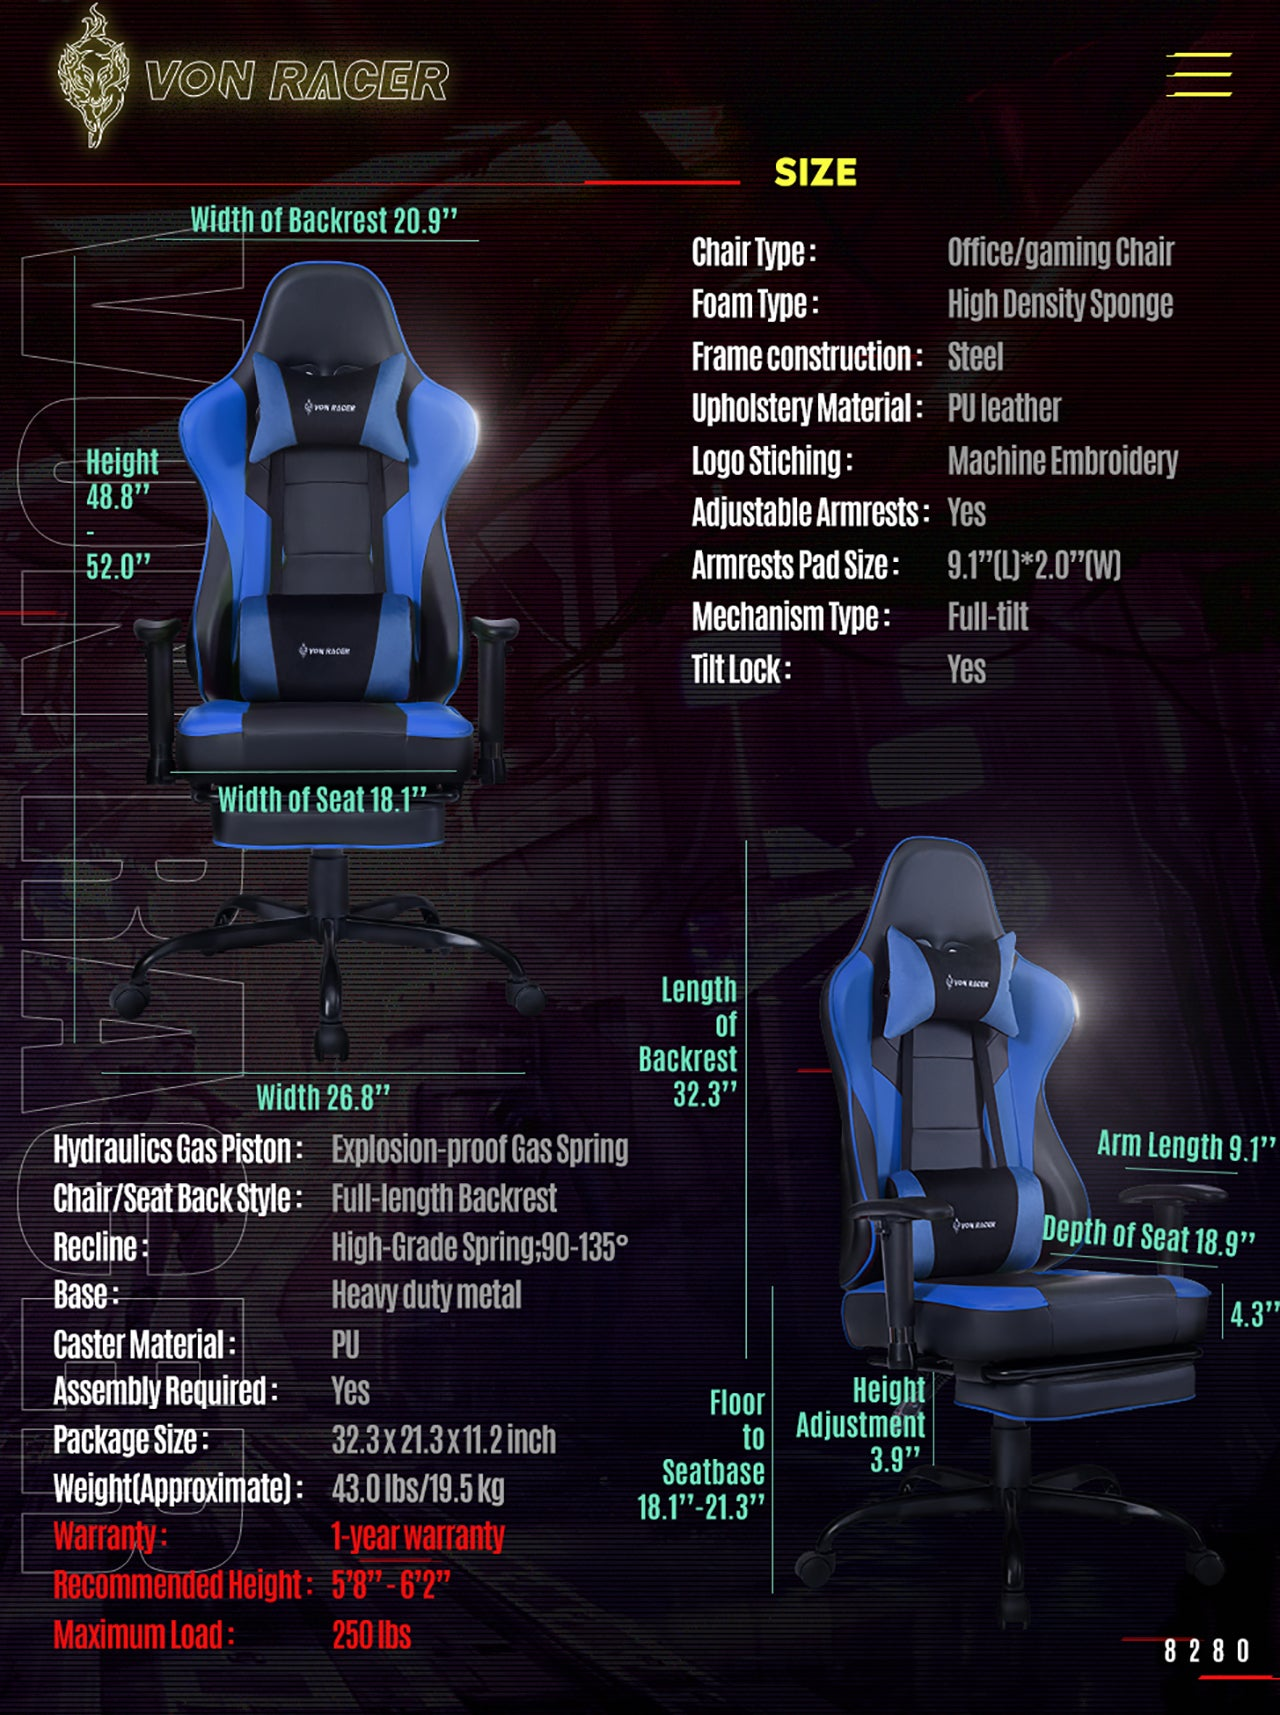 VON RACER ERGONOMIC GAMING CHAIR 8280 BLUE SPECIFICATION